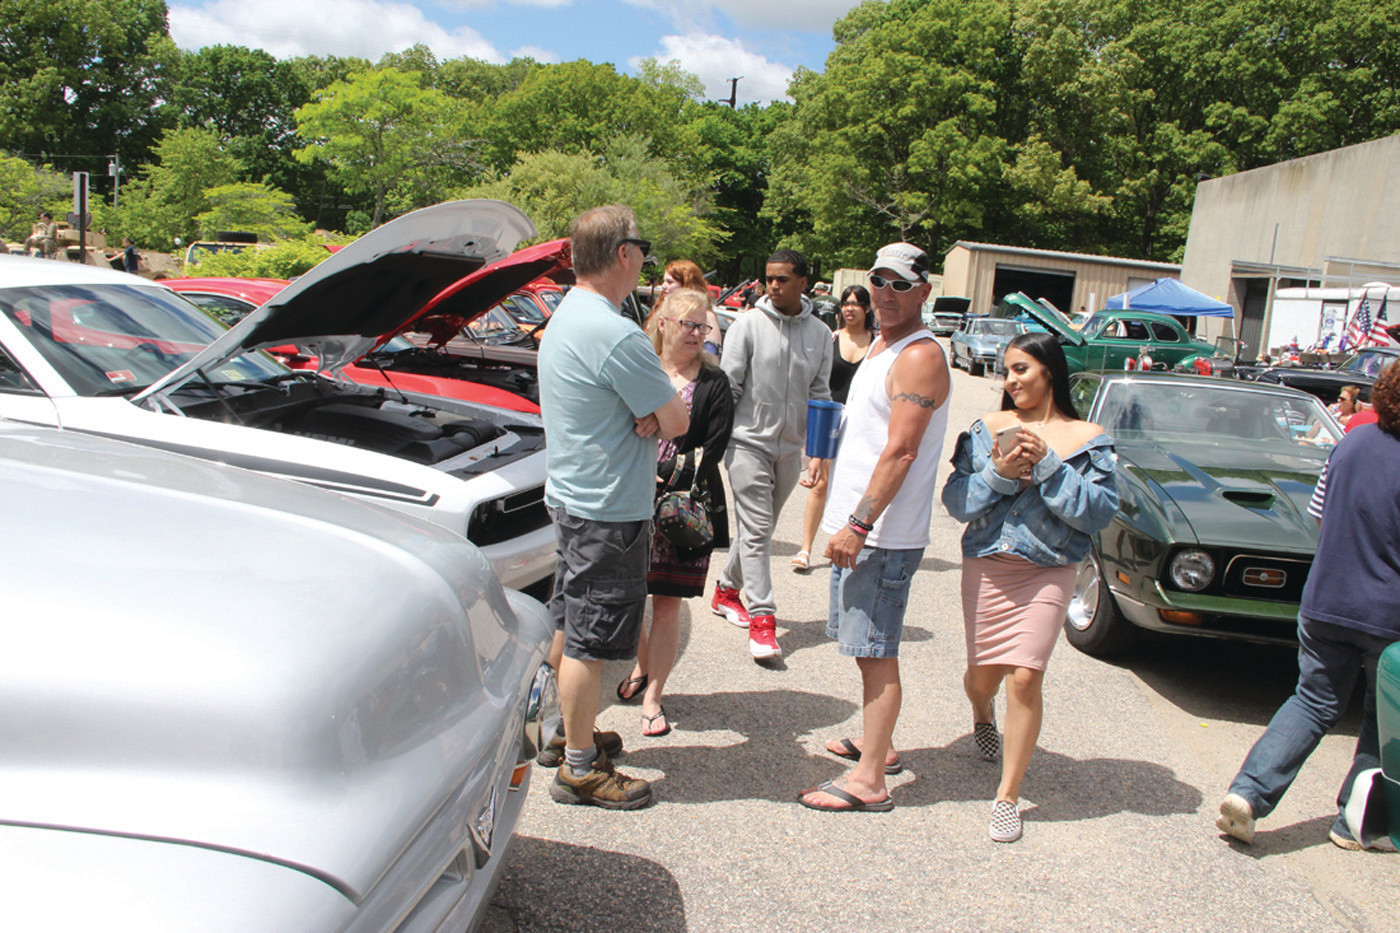 CRUISING IN STYLE: Students and car owners observed the many vintage and expensive cars brought to the show.